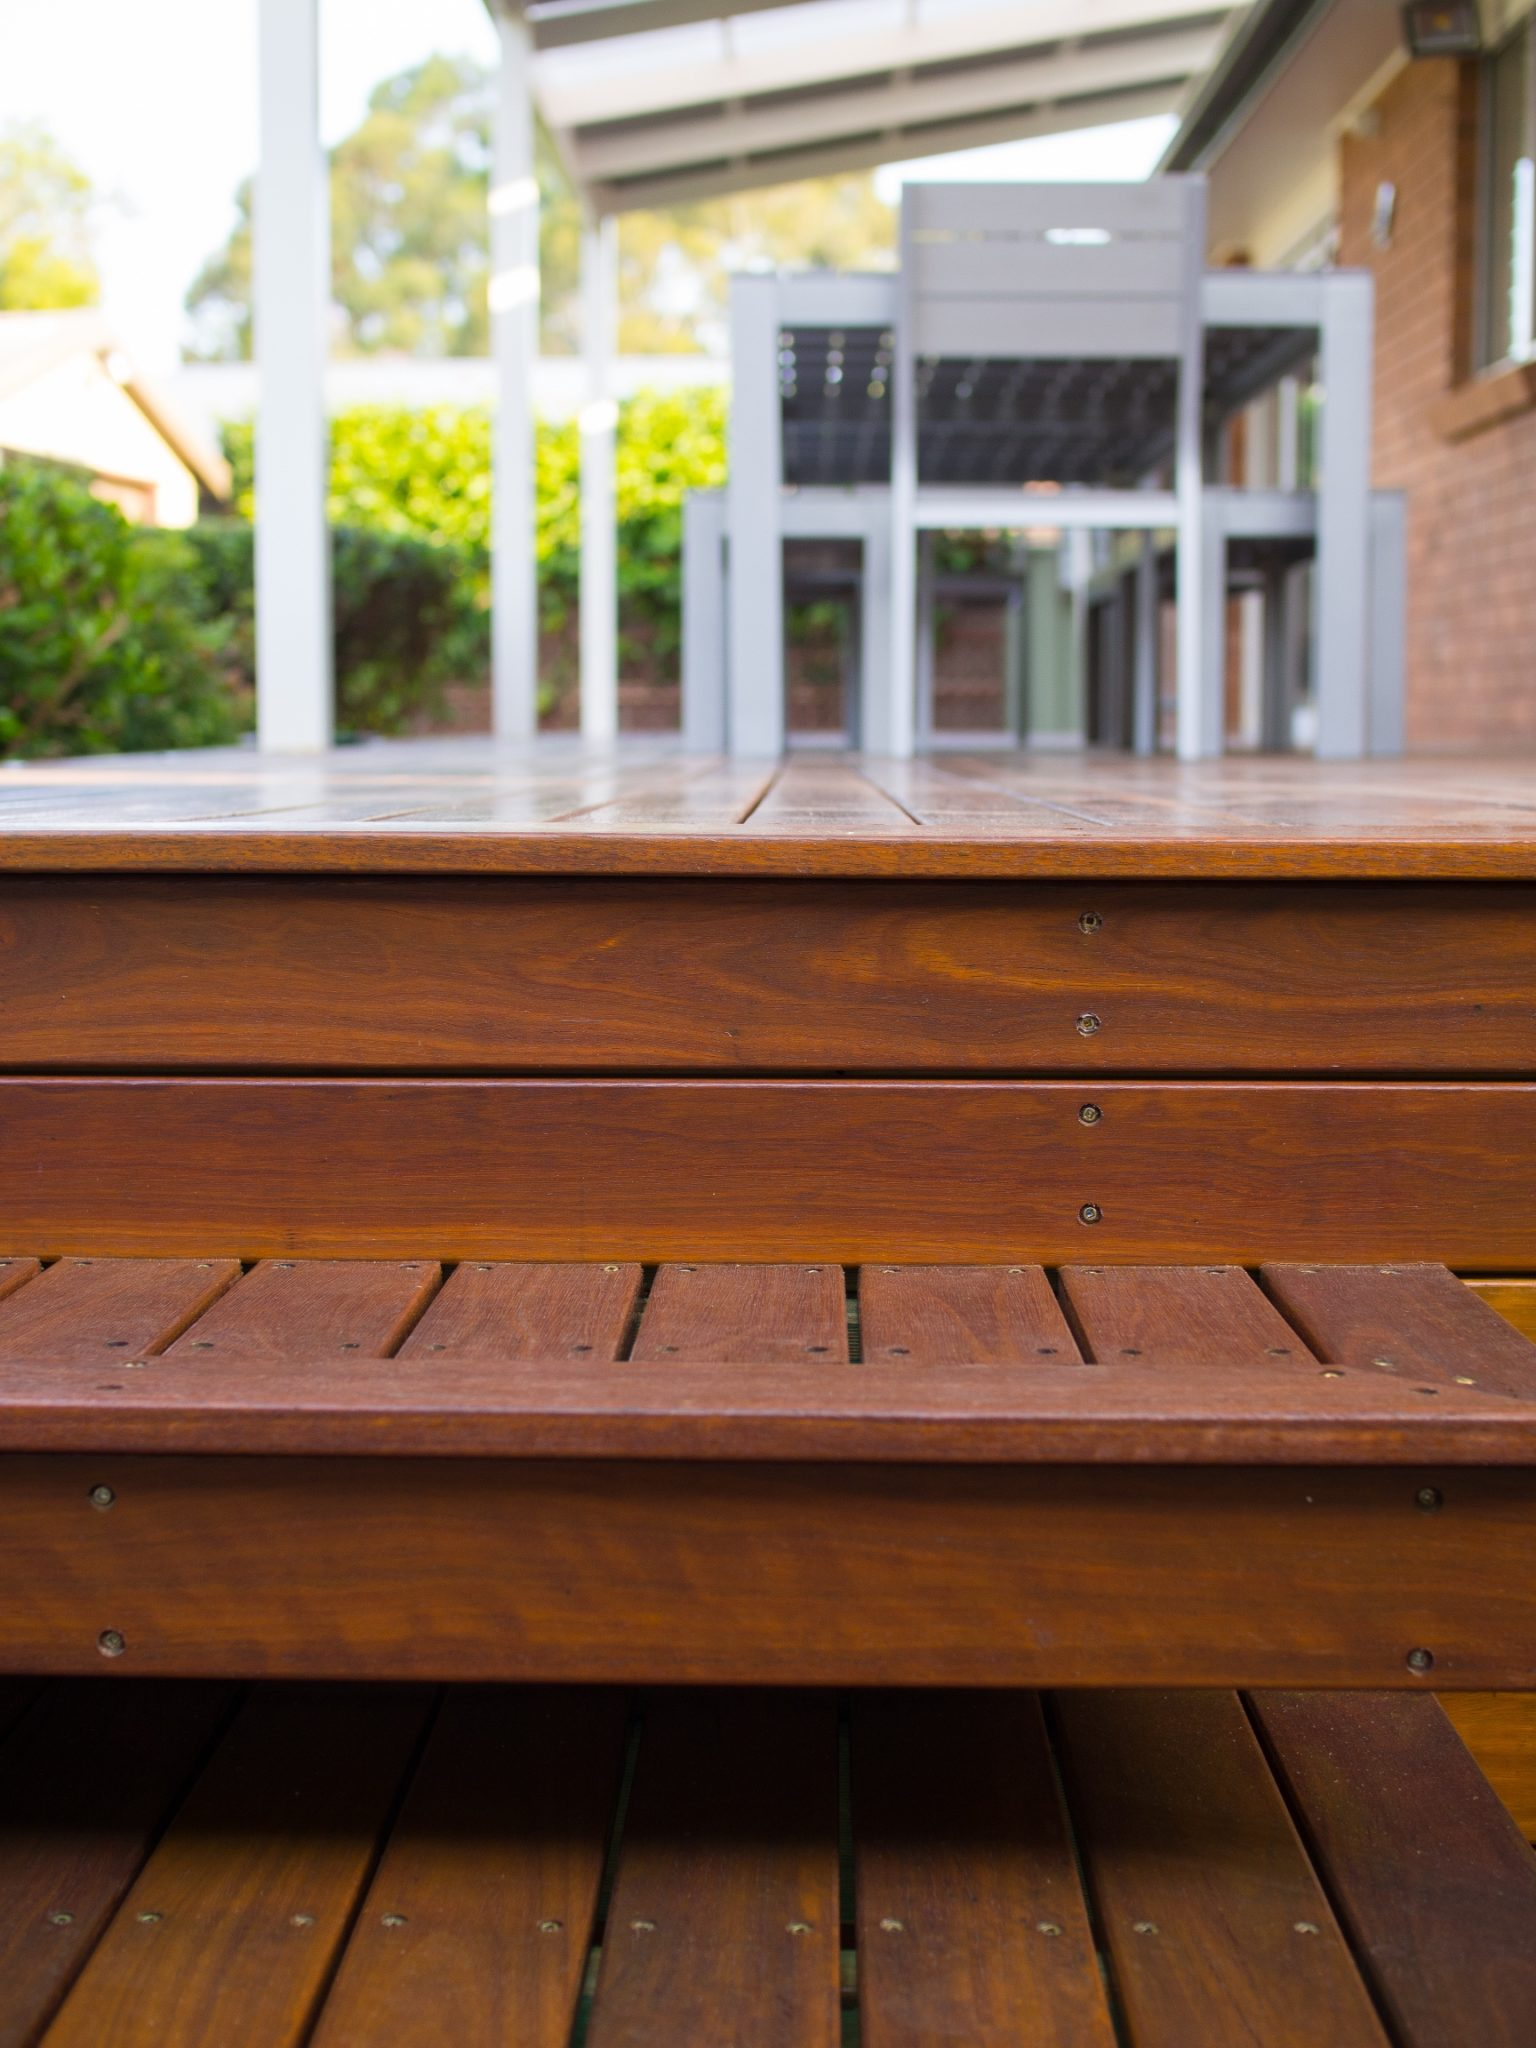 How to: Protect your exterior timber during winter